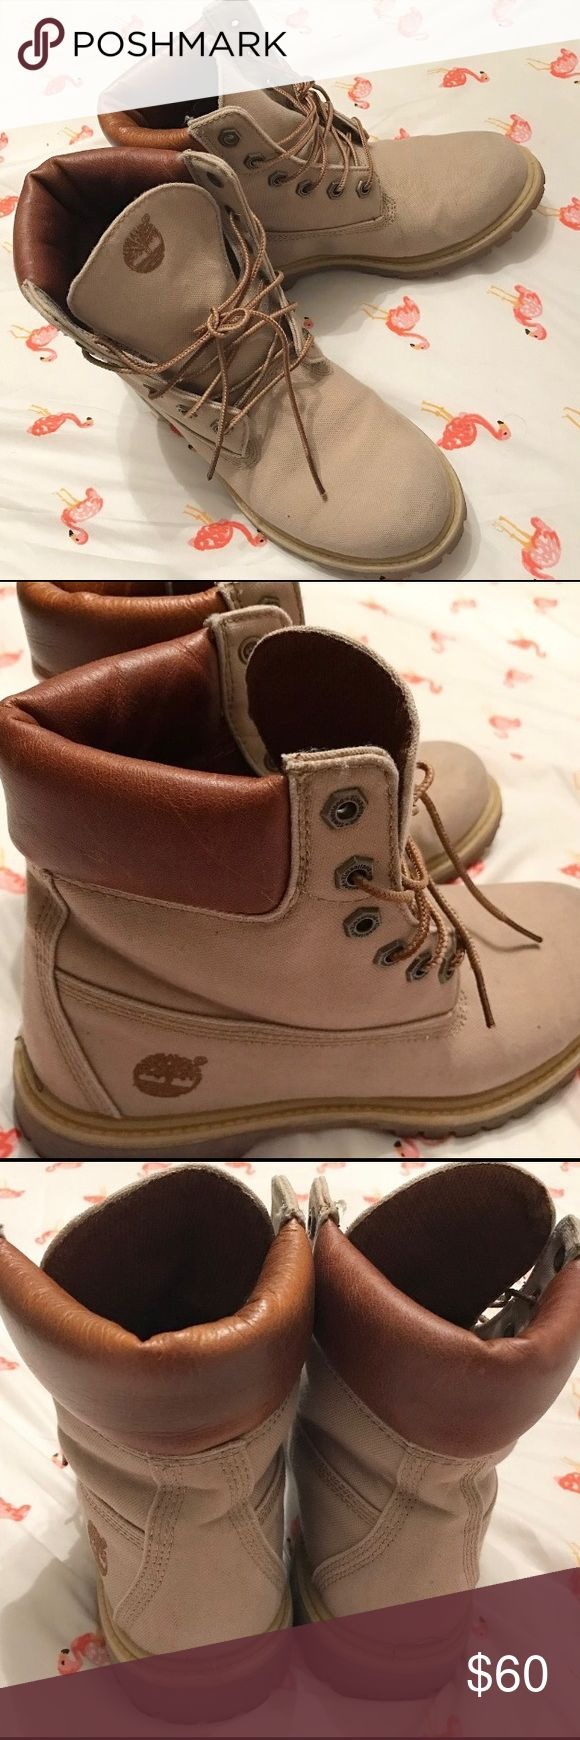 """TIMBERLANDS, BEIGE, Women's 7.5 Never been worn outside (they're too big for me)! These are like-new. Bottoms and insides are clean. Leather upper, with """"Anti-Fatigue"""" technology. US women's size 7.5. No box, sorry! Timberland Shoes Combat & Moto Boots"""